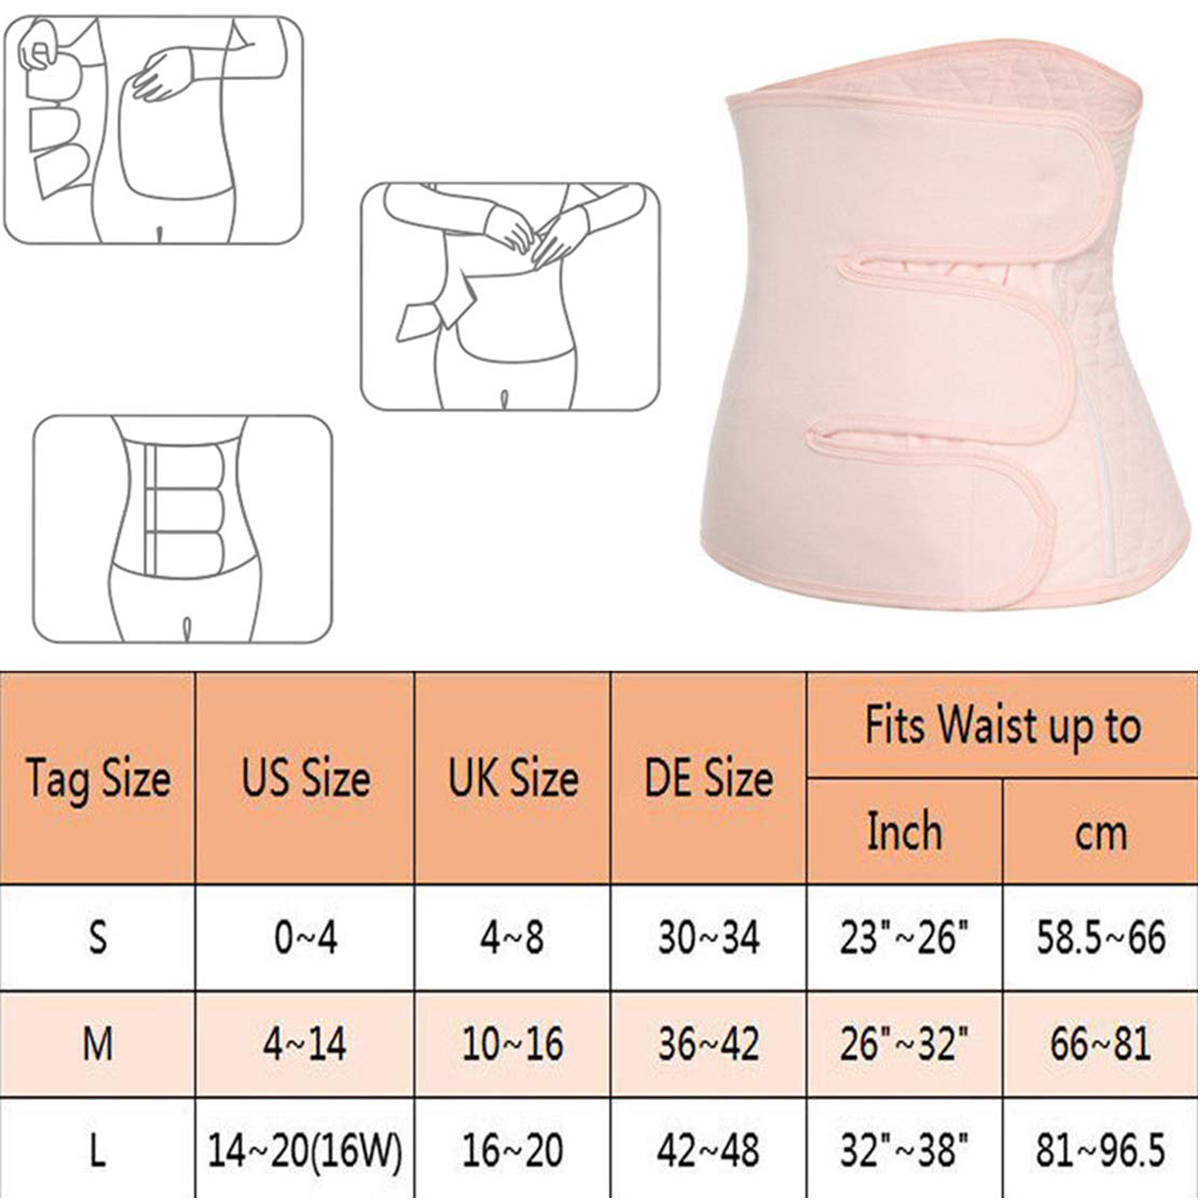 Ladies Firm Control Waist Clincher Belly Band Pregnancy Recovery UK 8-20 052